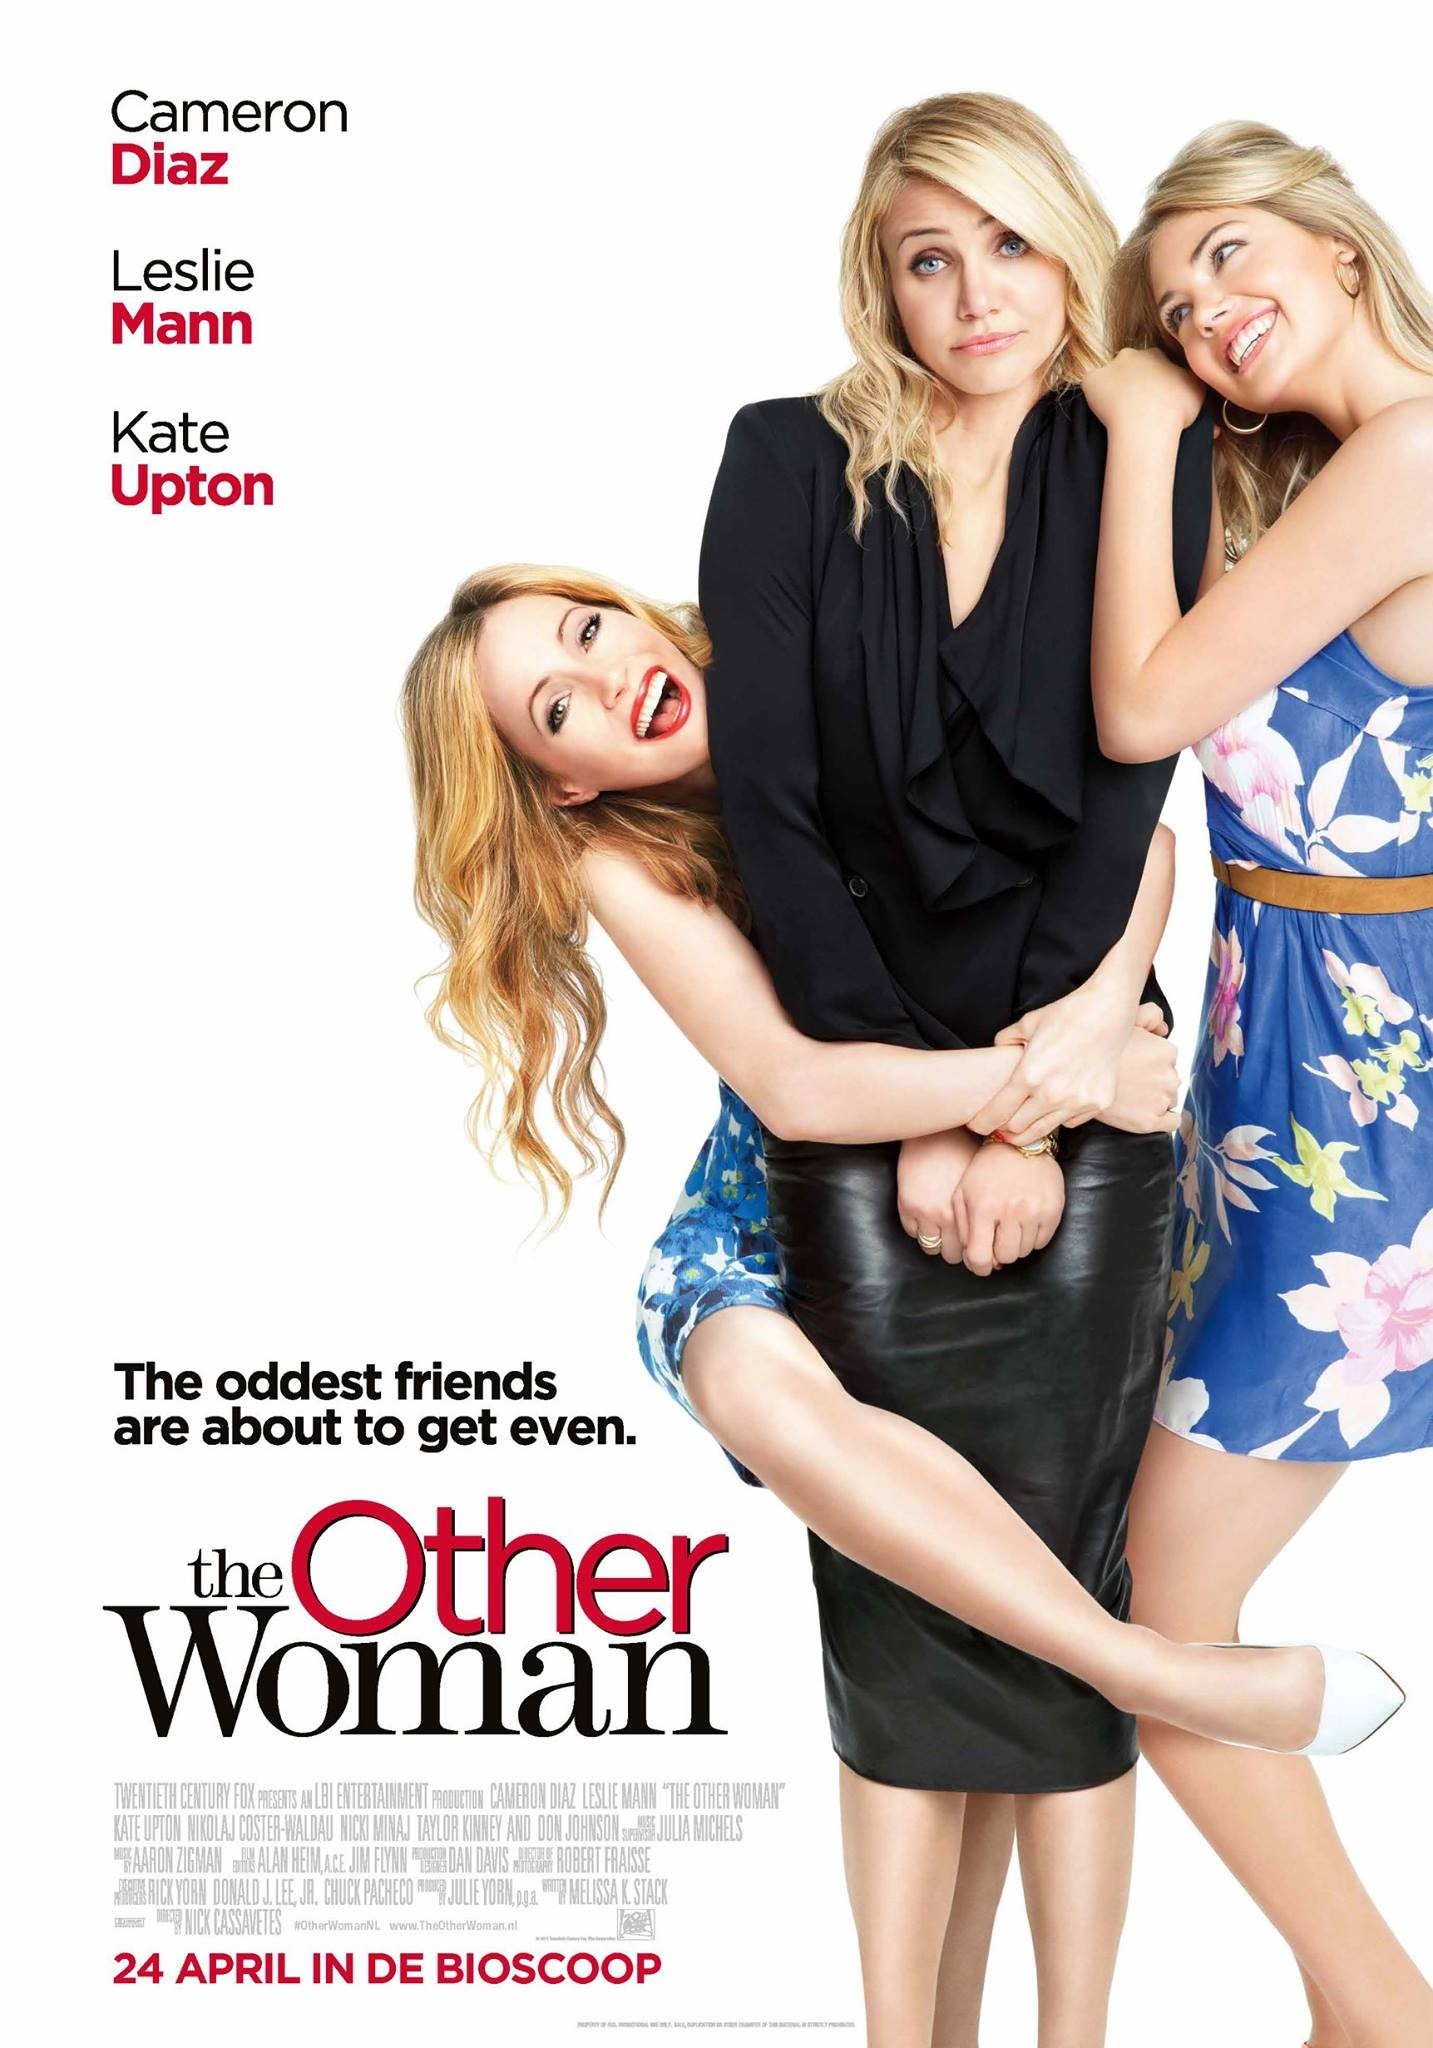 The Other Woman-Official Poster Banner PROMO XLG-13MARCO2014